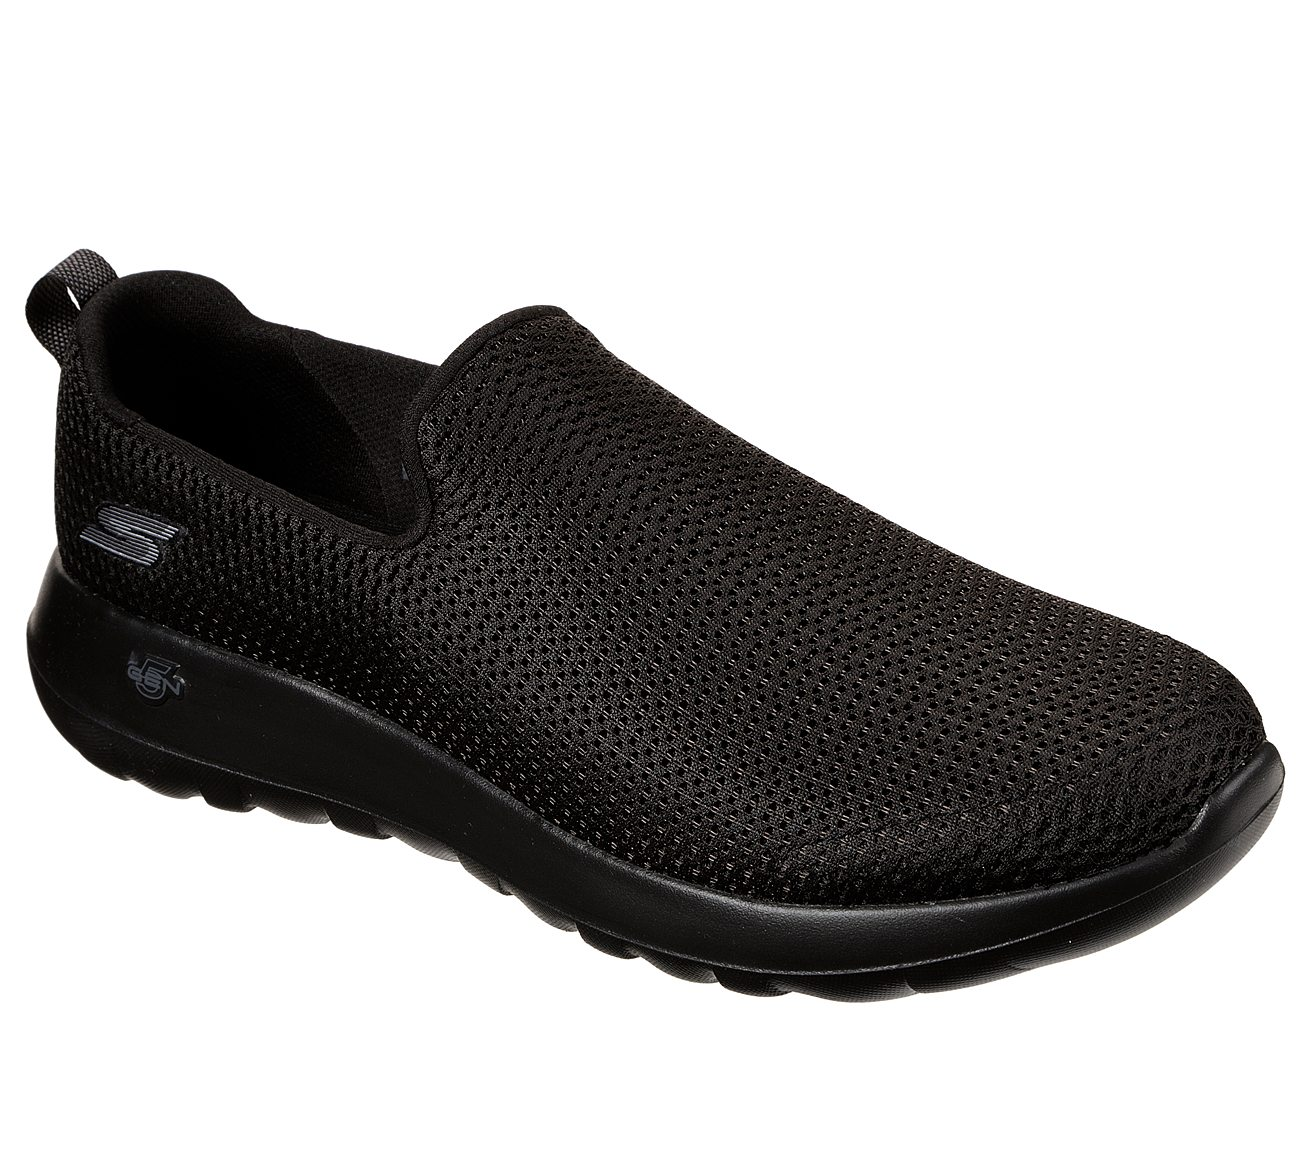 skechers new walking shoes